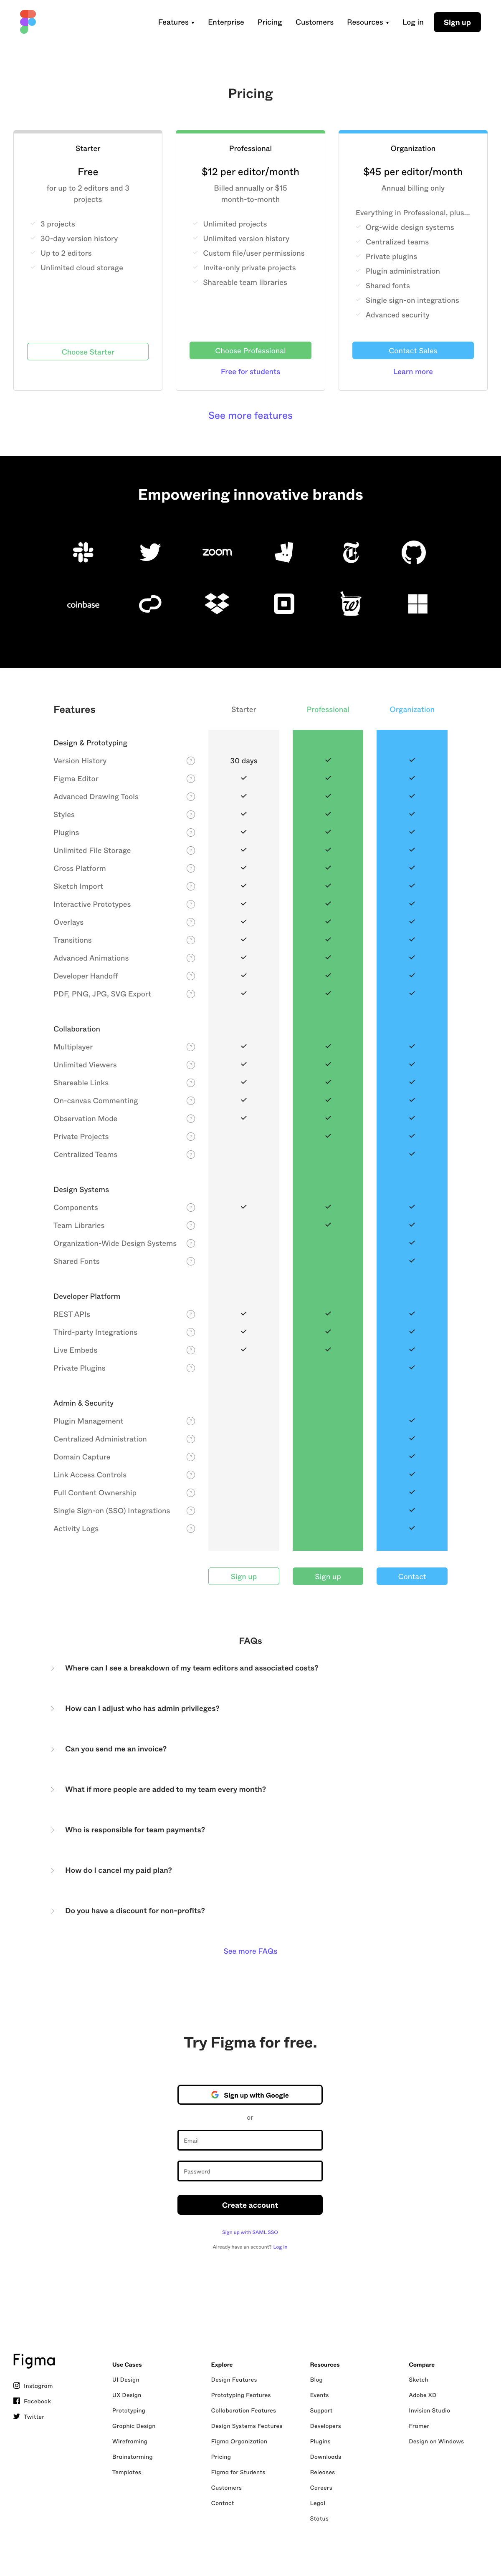 Figma - Pricing page